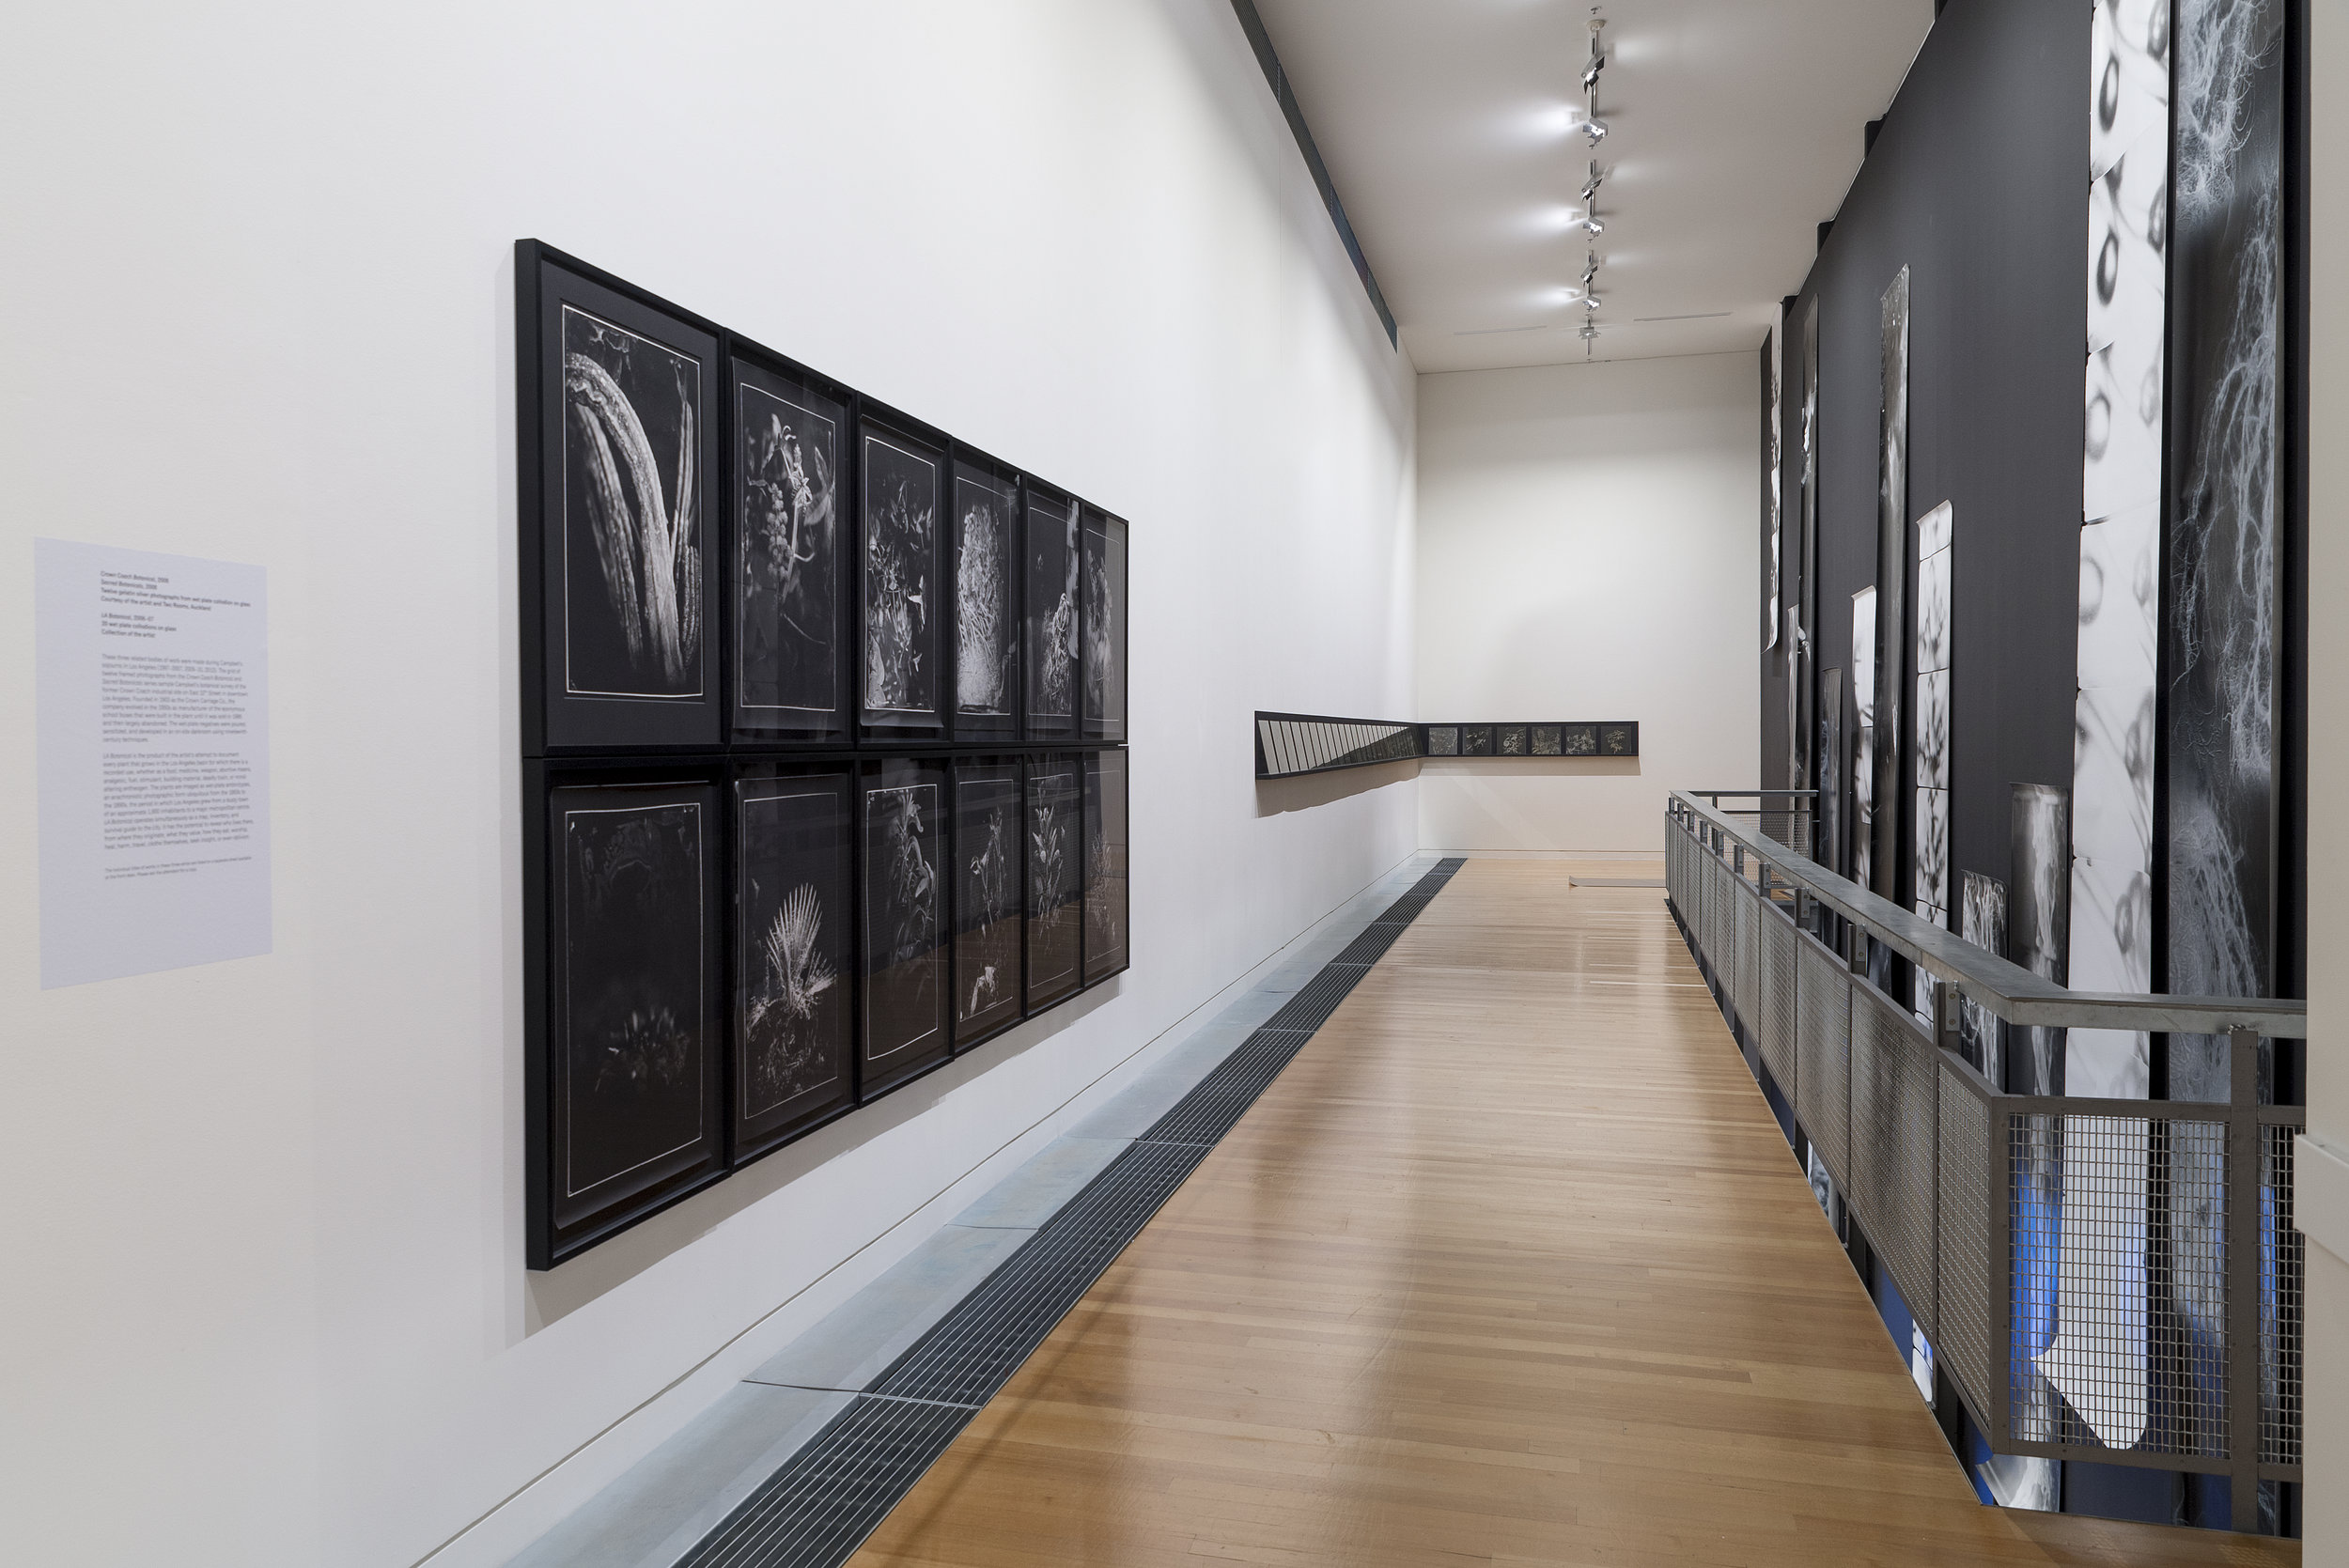 Installation view of  On the Last Afternoon: Disrupted Ecologies and the Work of Joyce Campbell